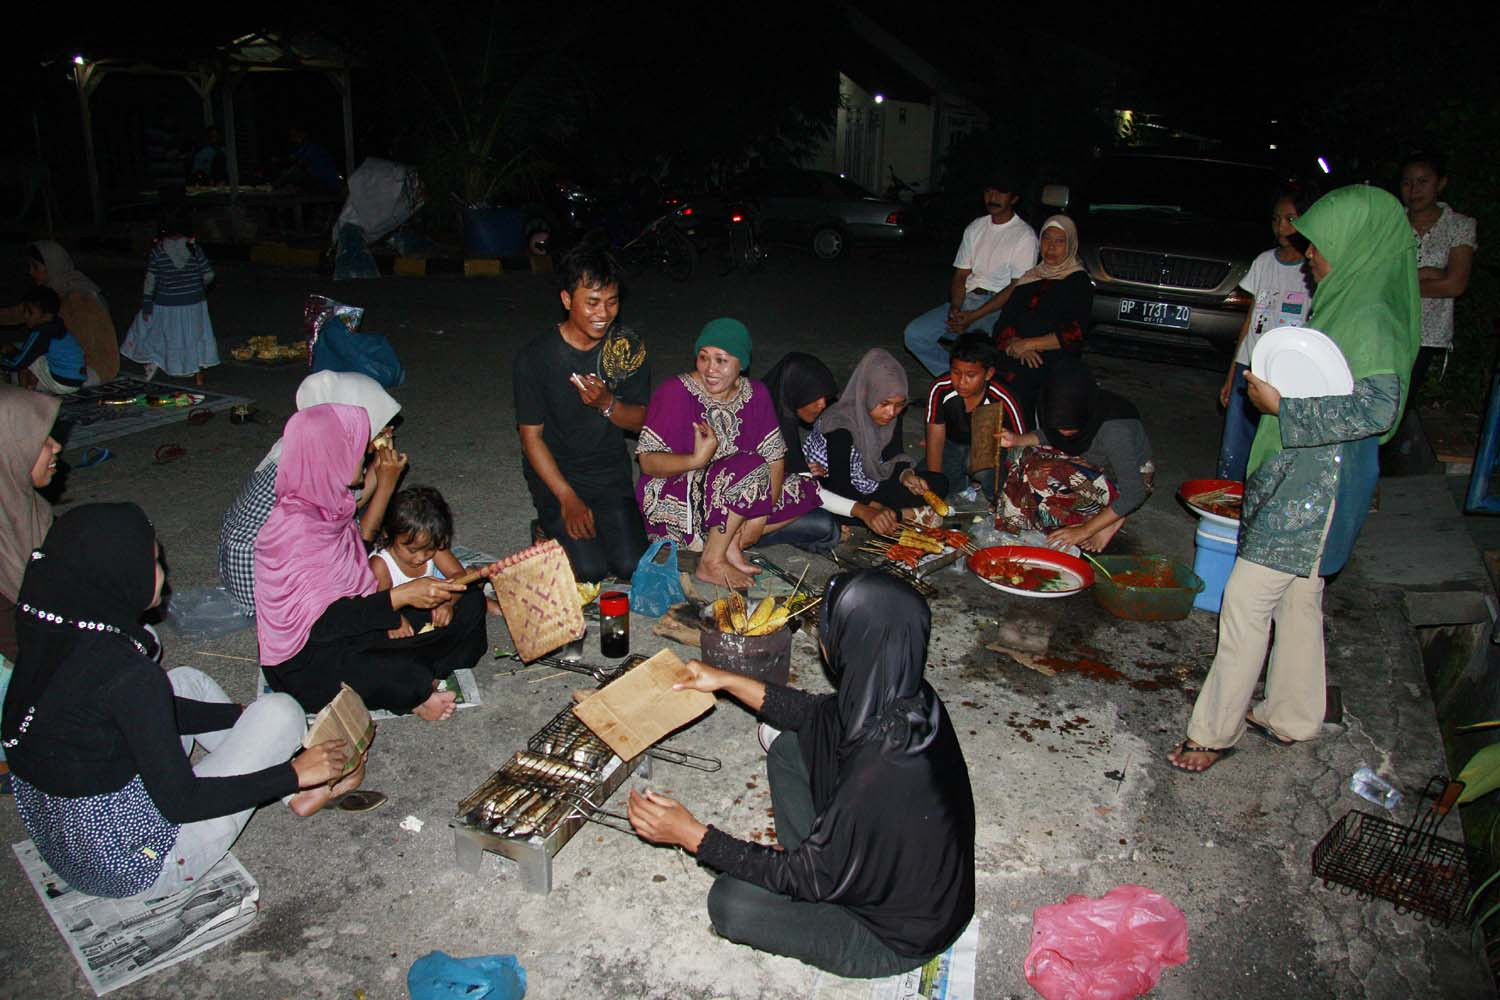 Pesta Barbeque | http://1.bp.blogspot.com/